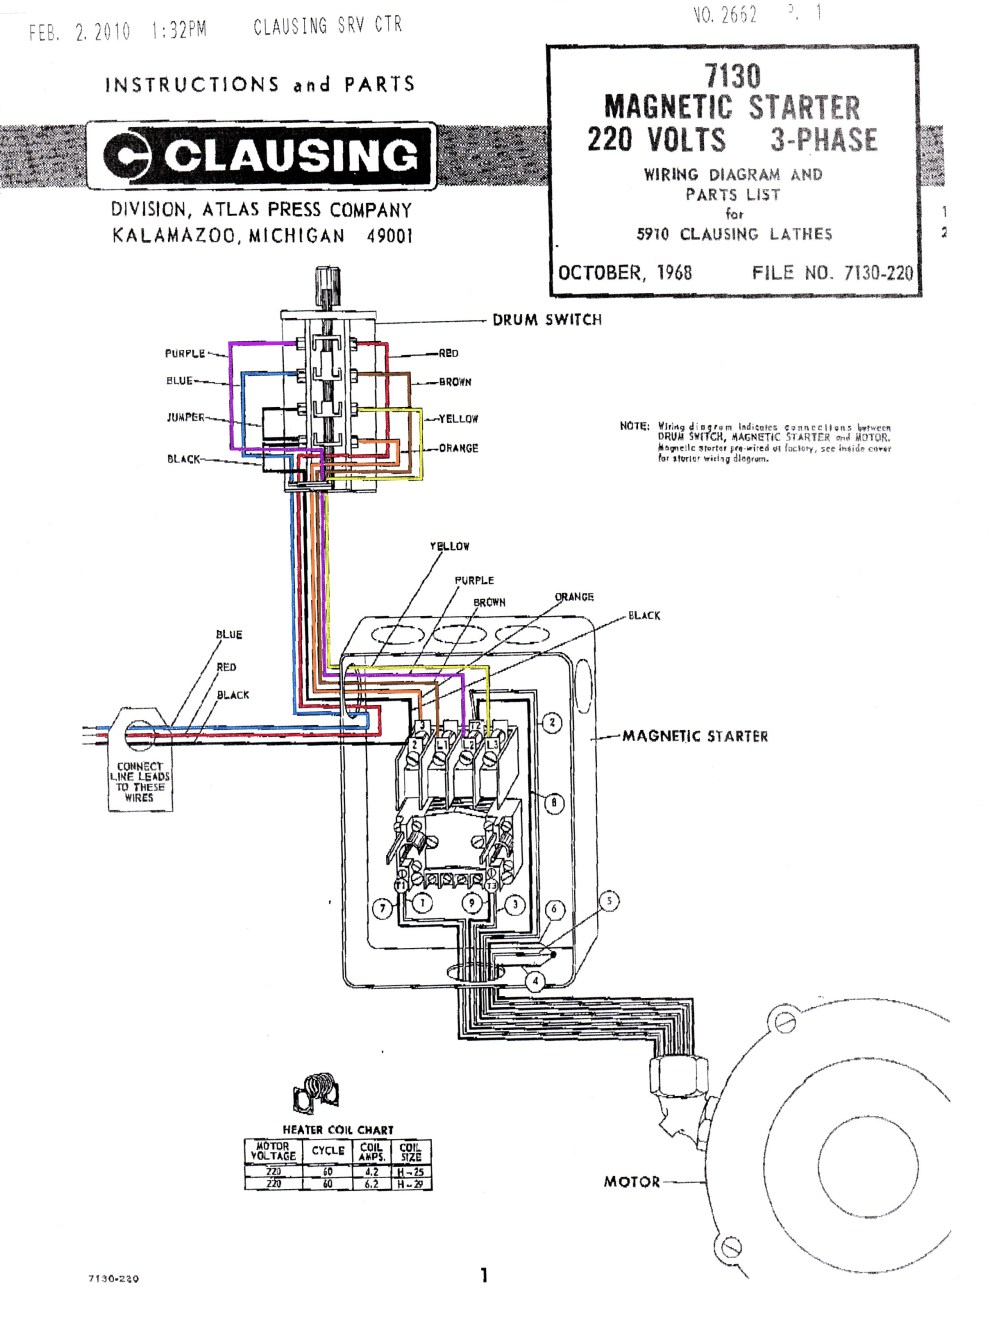 medium resolution of 3 phase motor starter relay wiring diagram allen bradley 3 air conditioning compressor wiring diagram hvac compressor wiring diagram